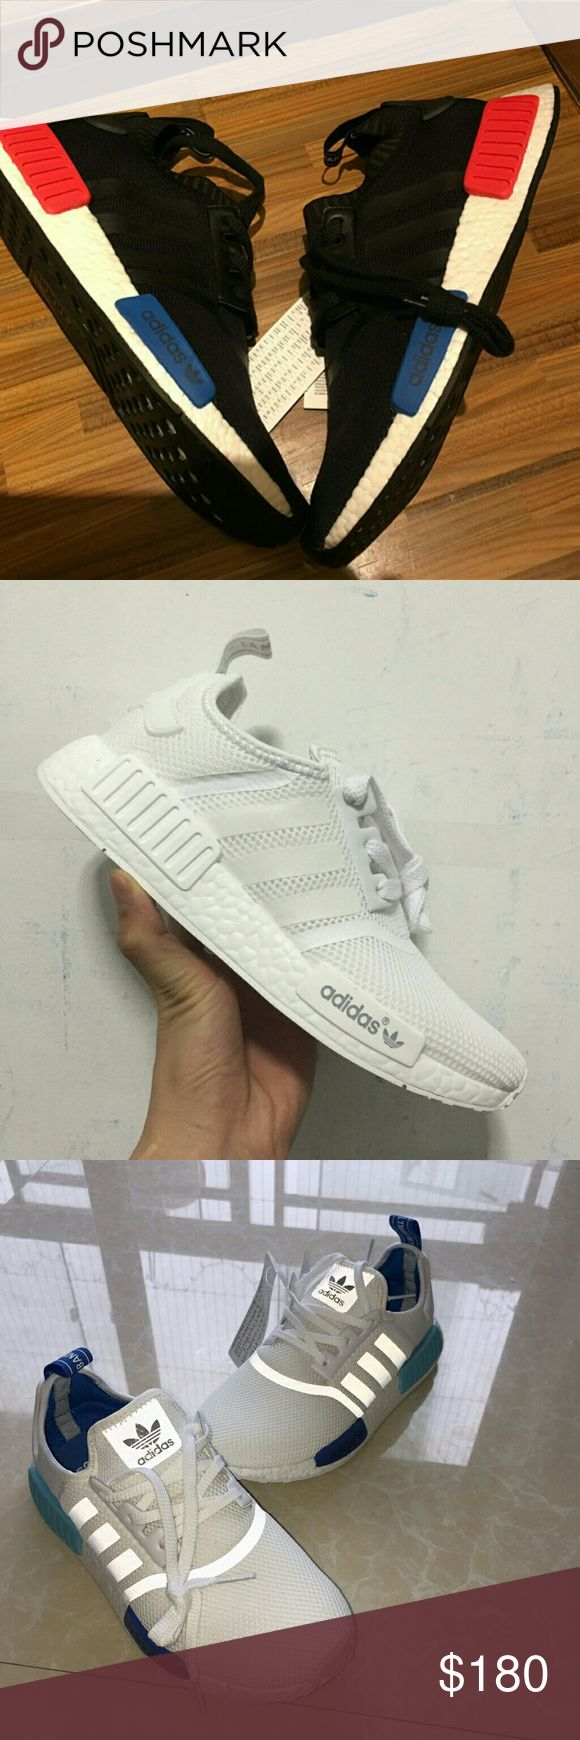 Adidas NMD R1 Runner Boost men women Size:5-11,  Color: pirate black S81846, All white S79166, White blue S75235, Black S79168;   (Get Big Discount!!!) Welcome to make an offer!!! adidas Shoes Athletic Shoes